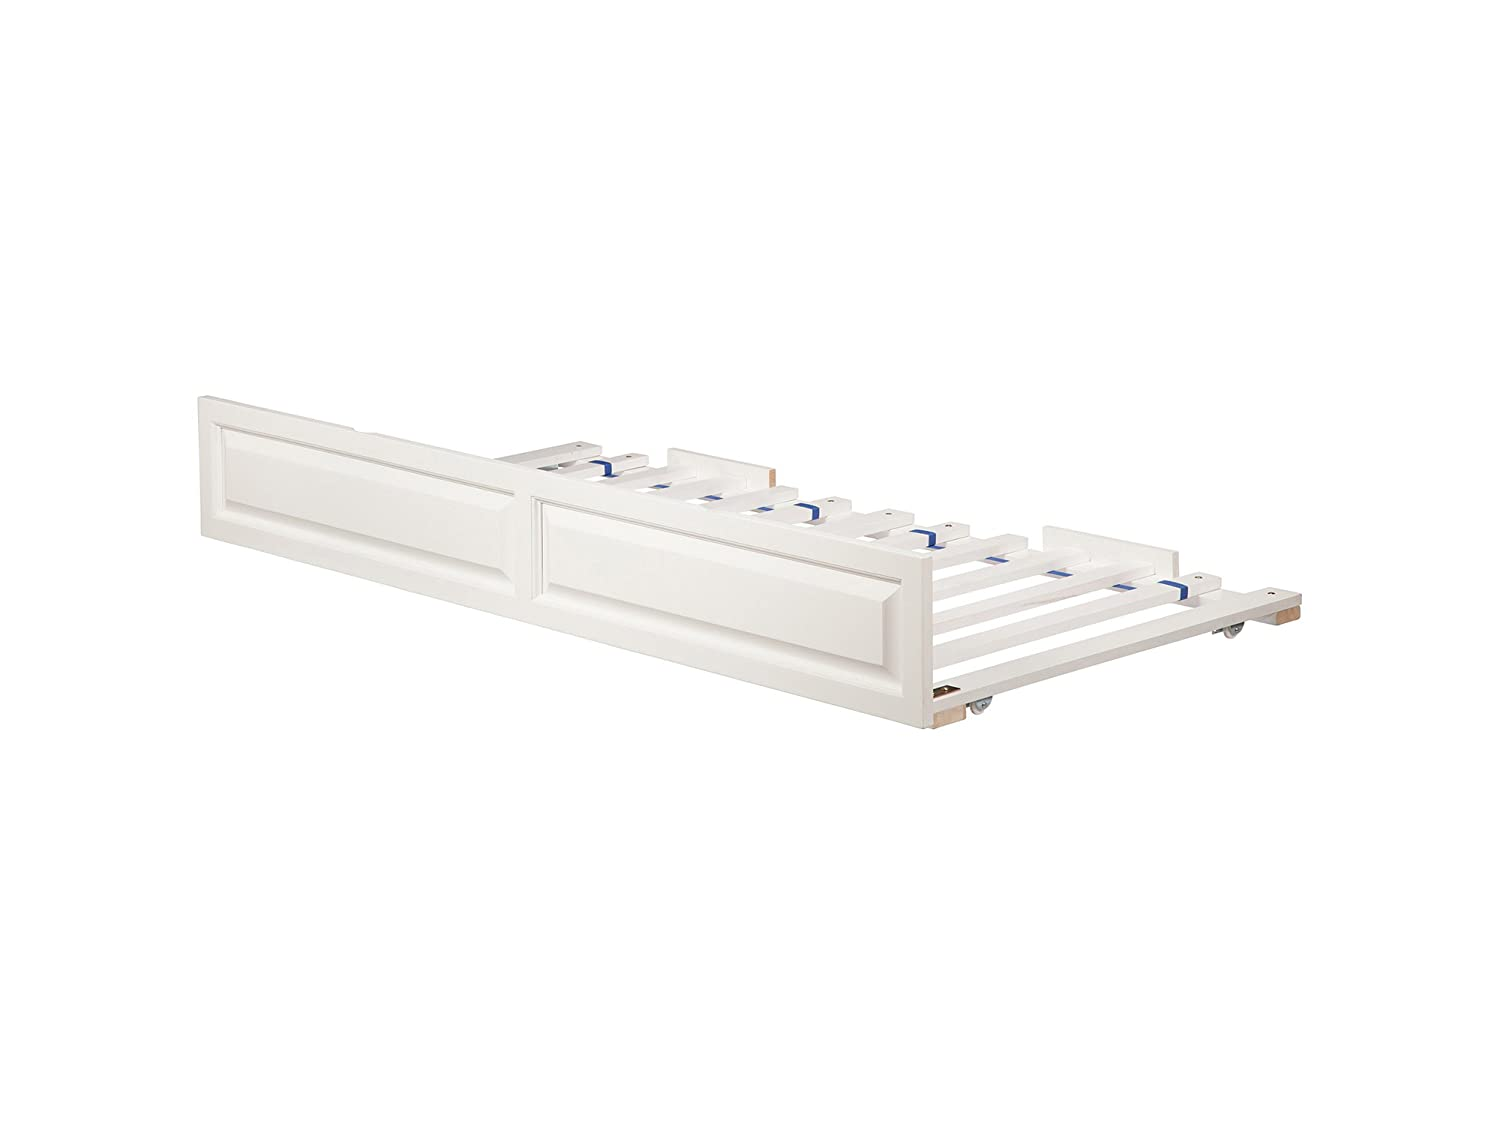 Atlantic Furniture E-67202 Raised Panel Trundle Bed, Twin Full, White